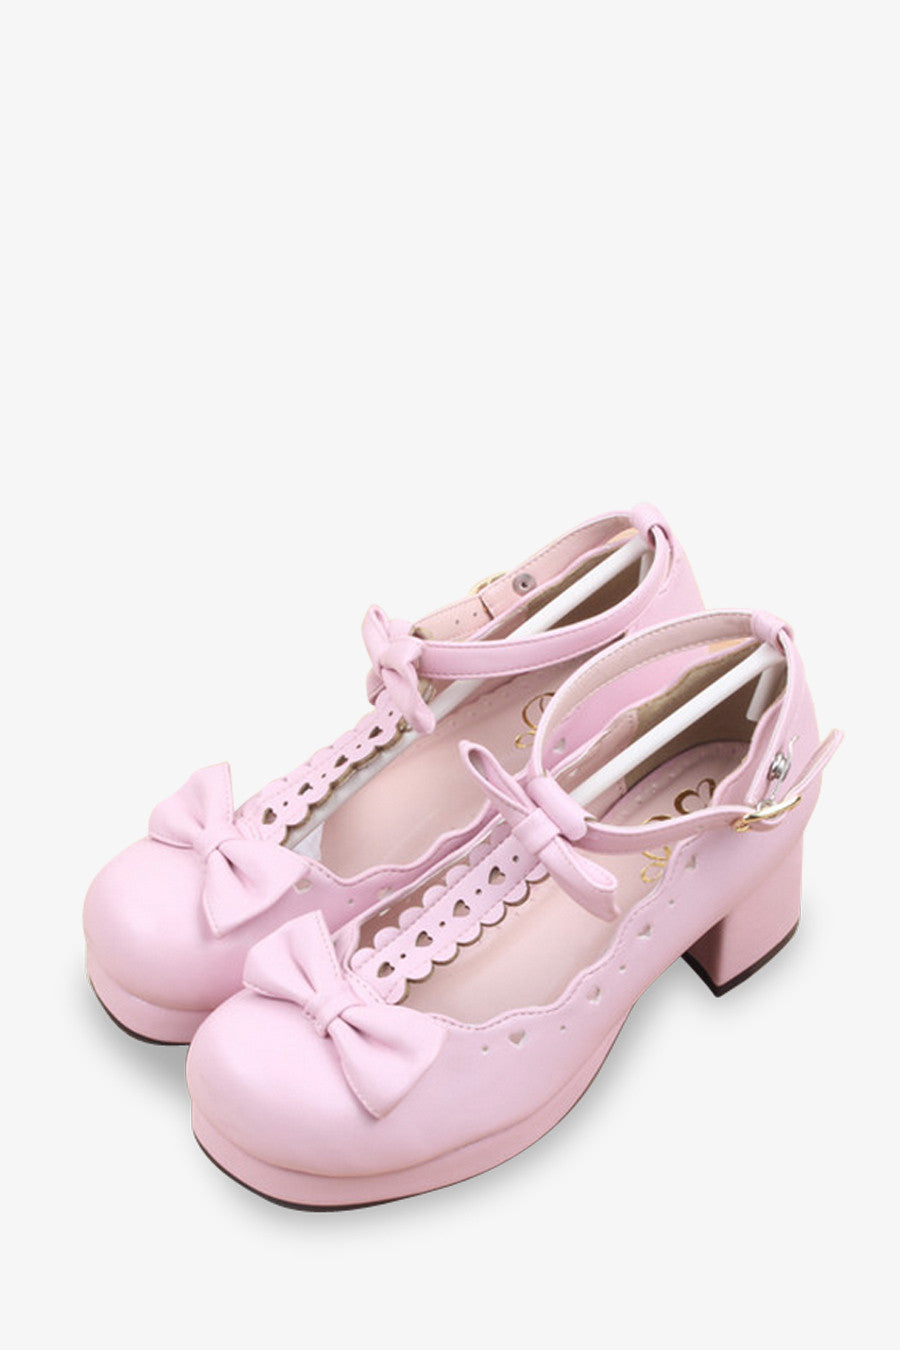 6dca291e34f8 Pink Bows T-Strap Lolita Shoes